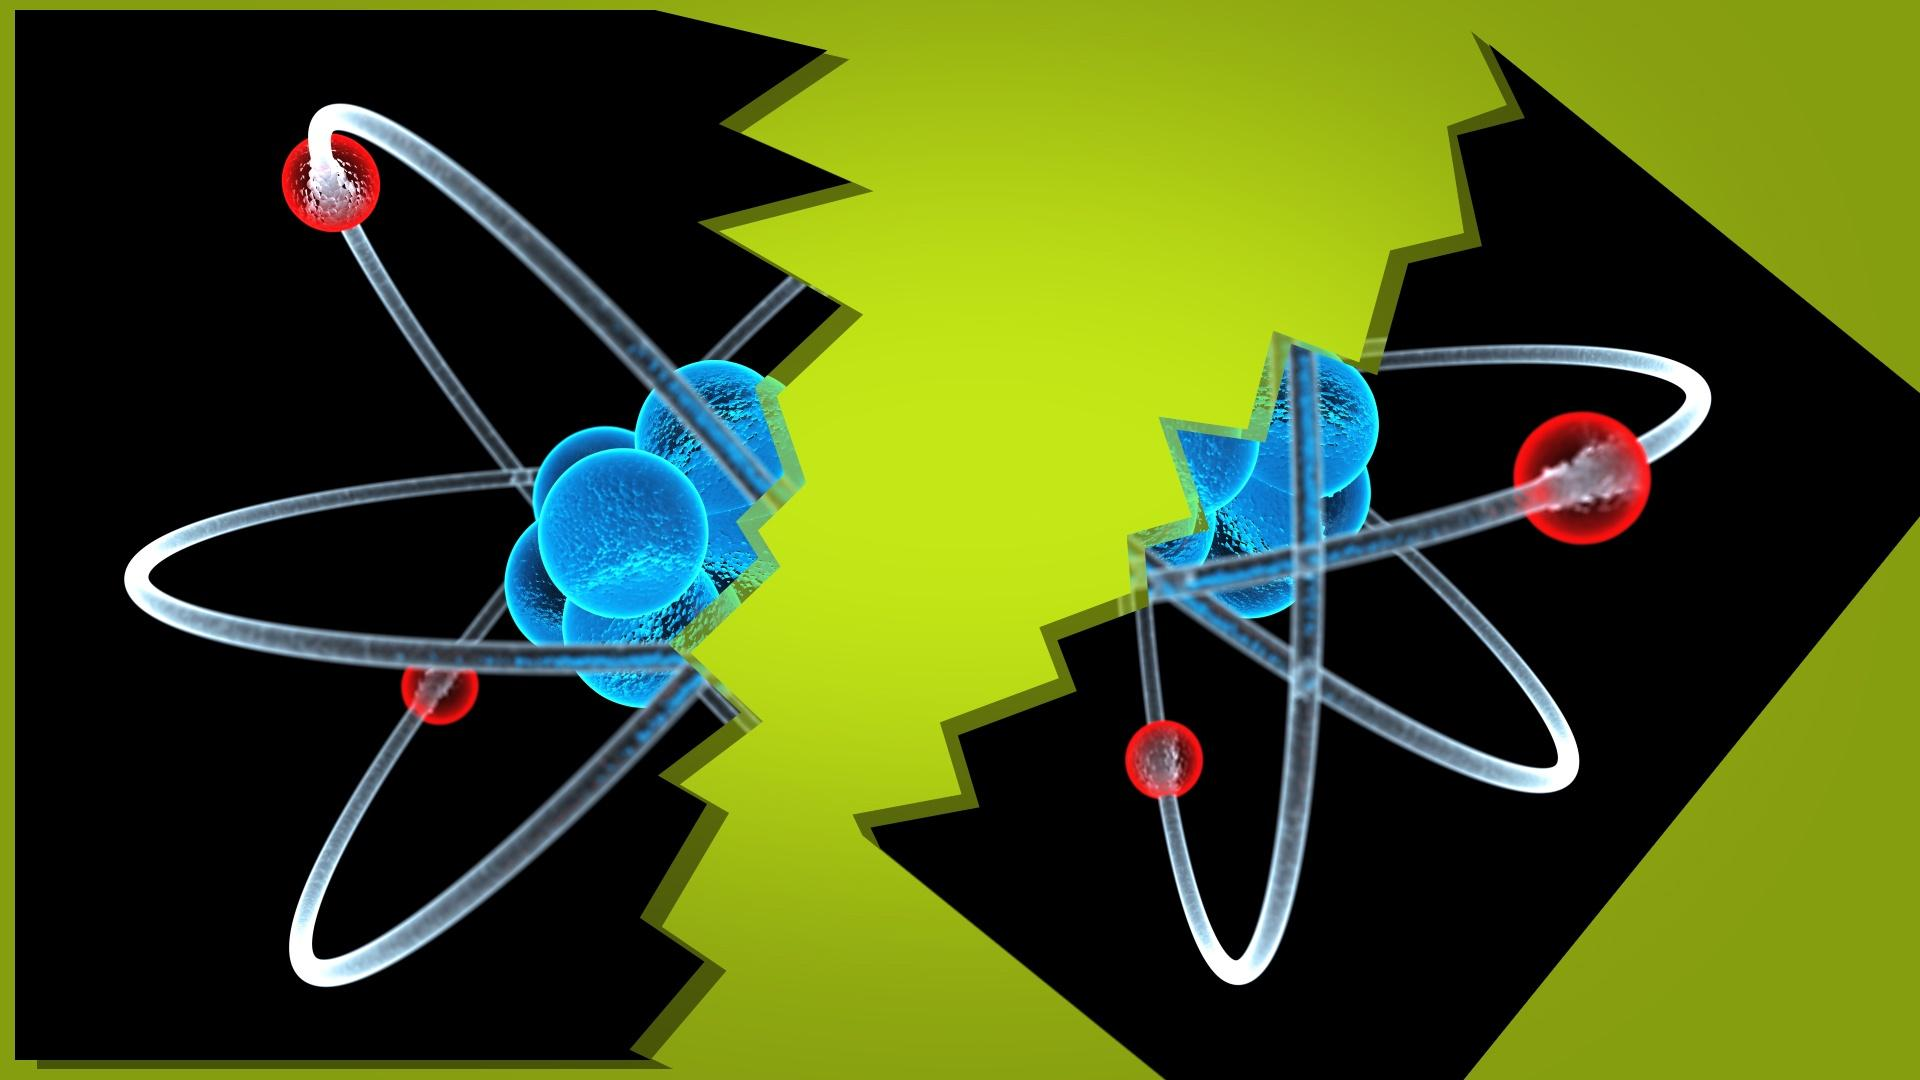 What Does an Atom Look Like? Hero